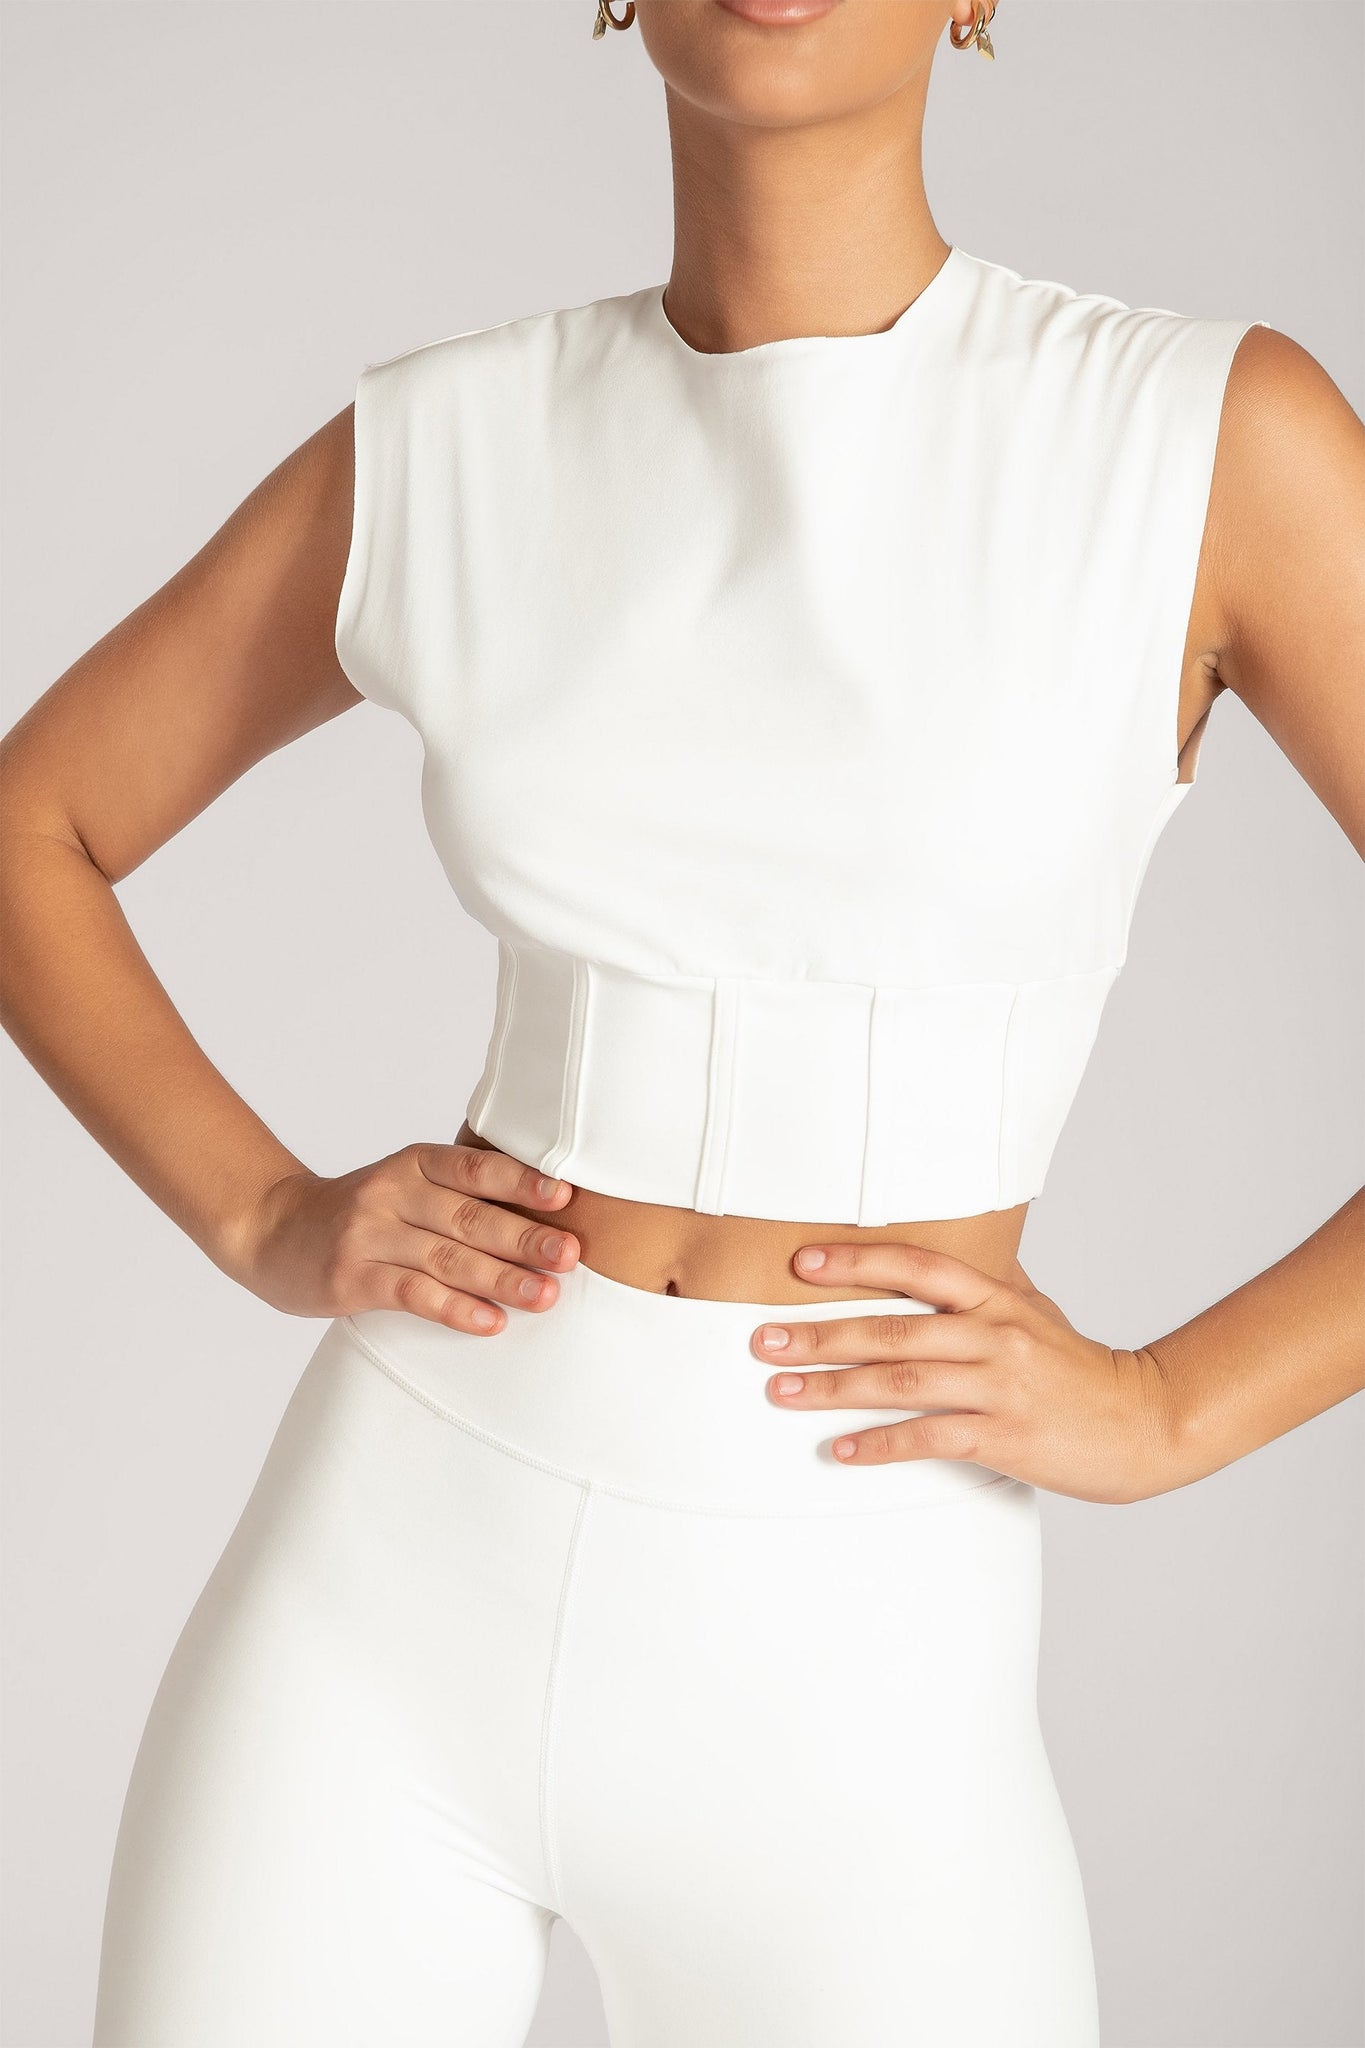 Hestia Panelled Sleeveless Crop Top - White - MESHKI